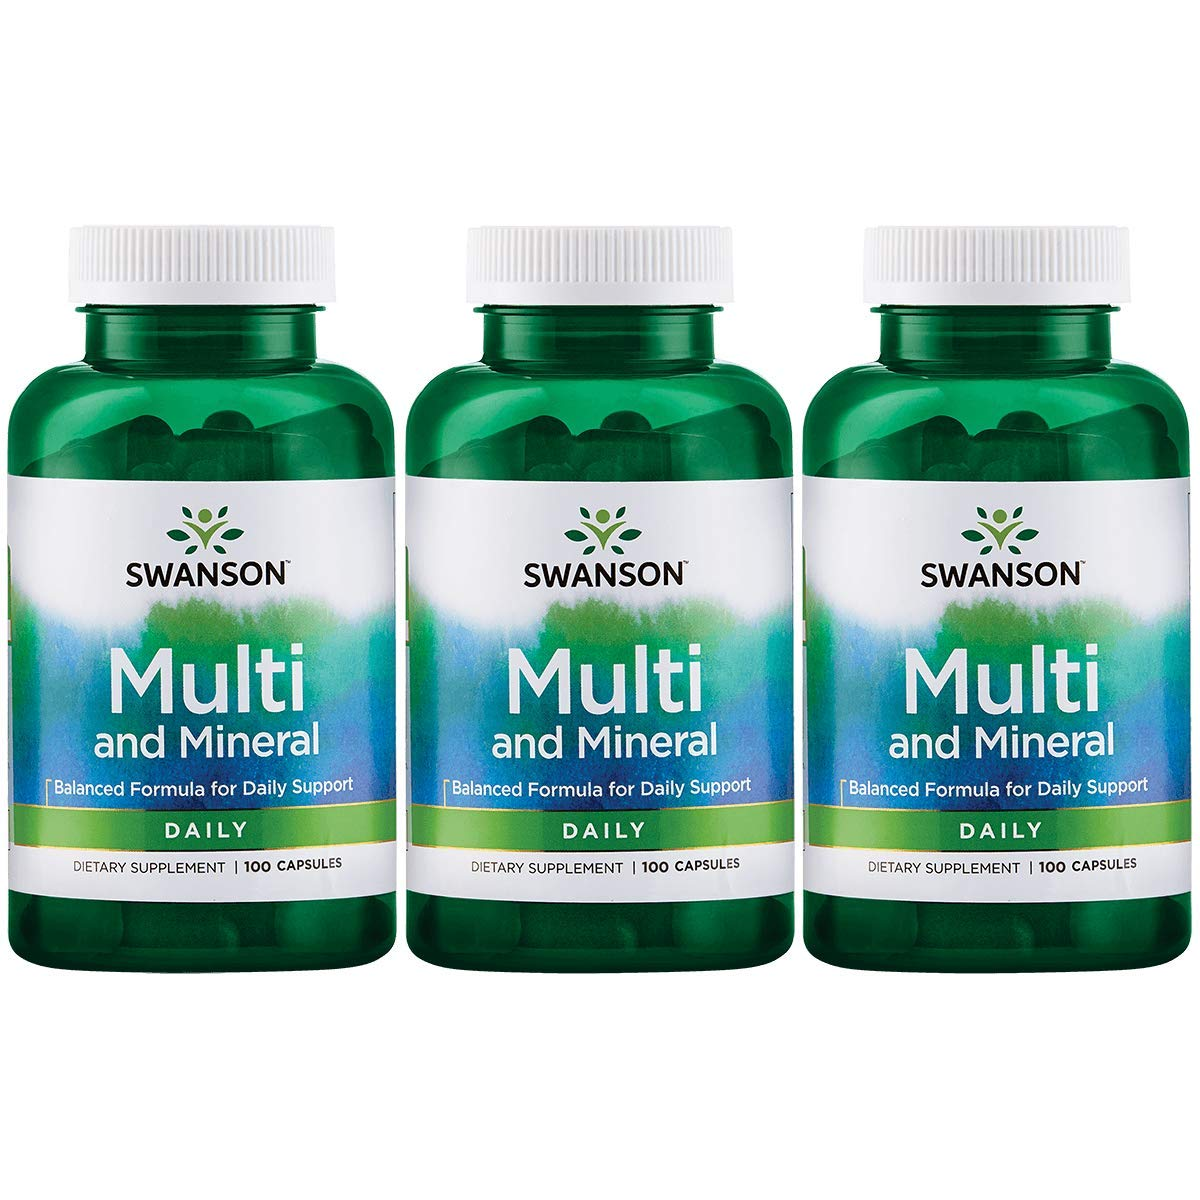 Swanson Multi and Mineral Daily Men s Women s Multivitamin Multimineral Health Supplement 100 Capsules Caps 3 Pack